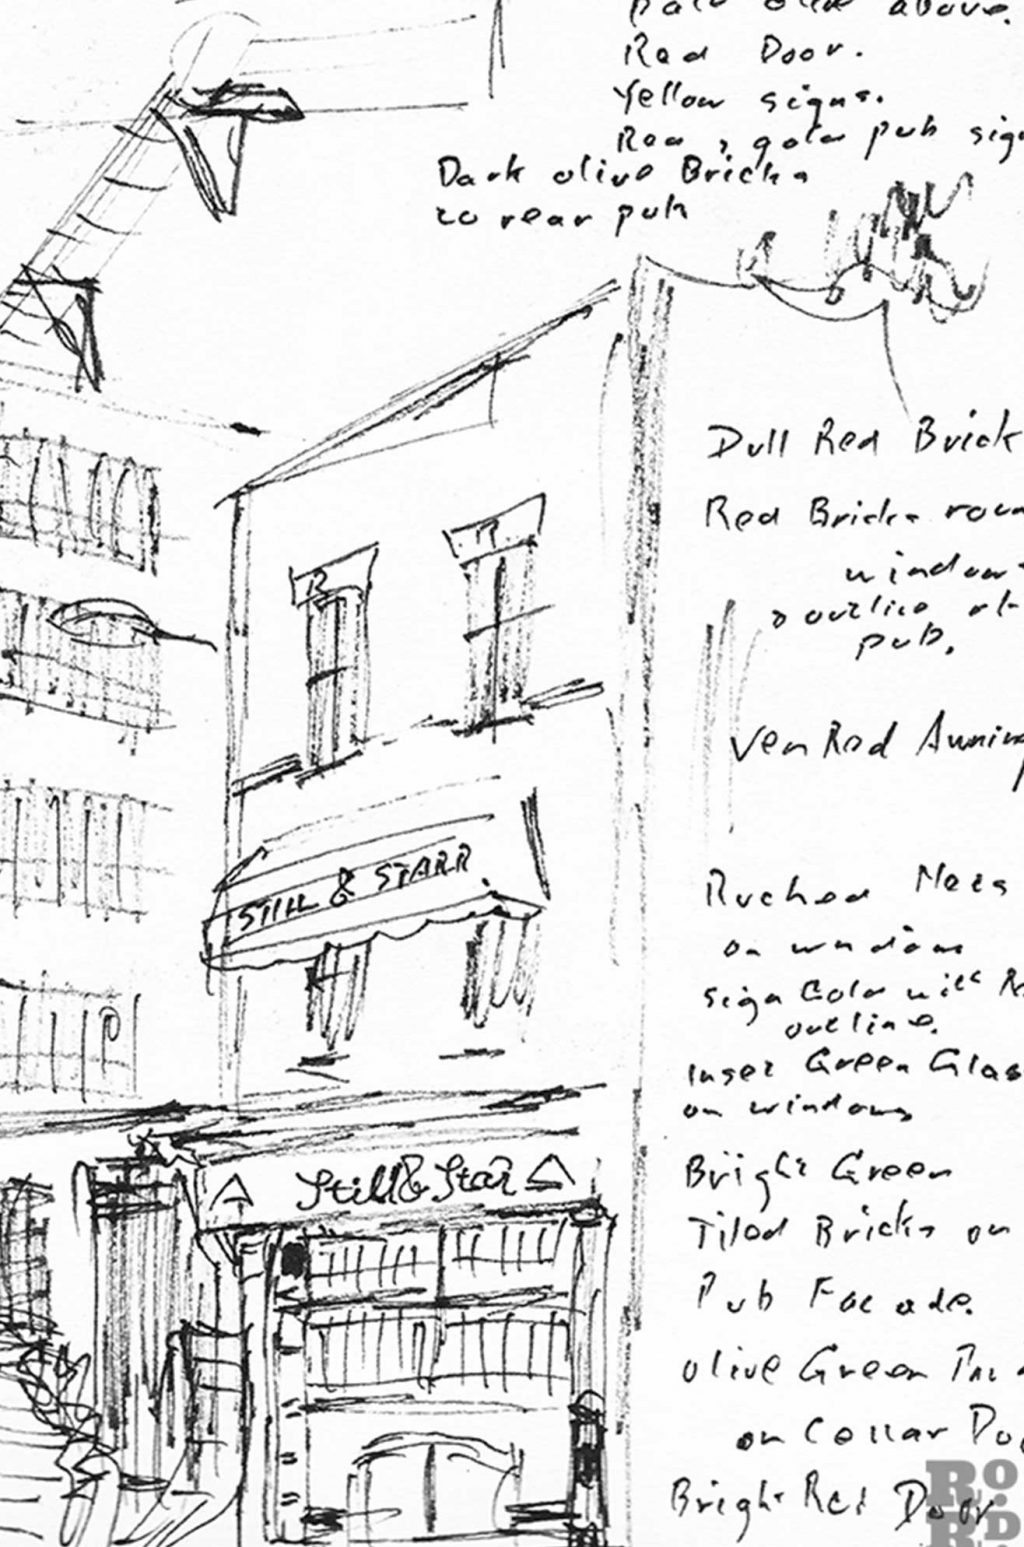 Sketches and notes for a Poplar street painting by Noel Gibson